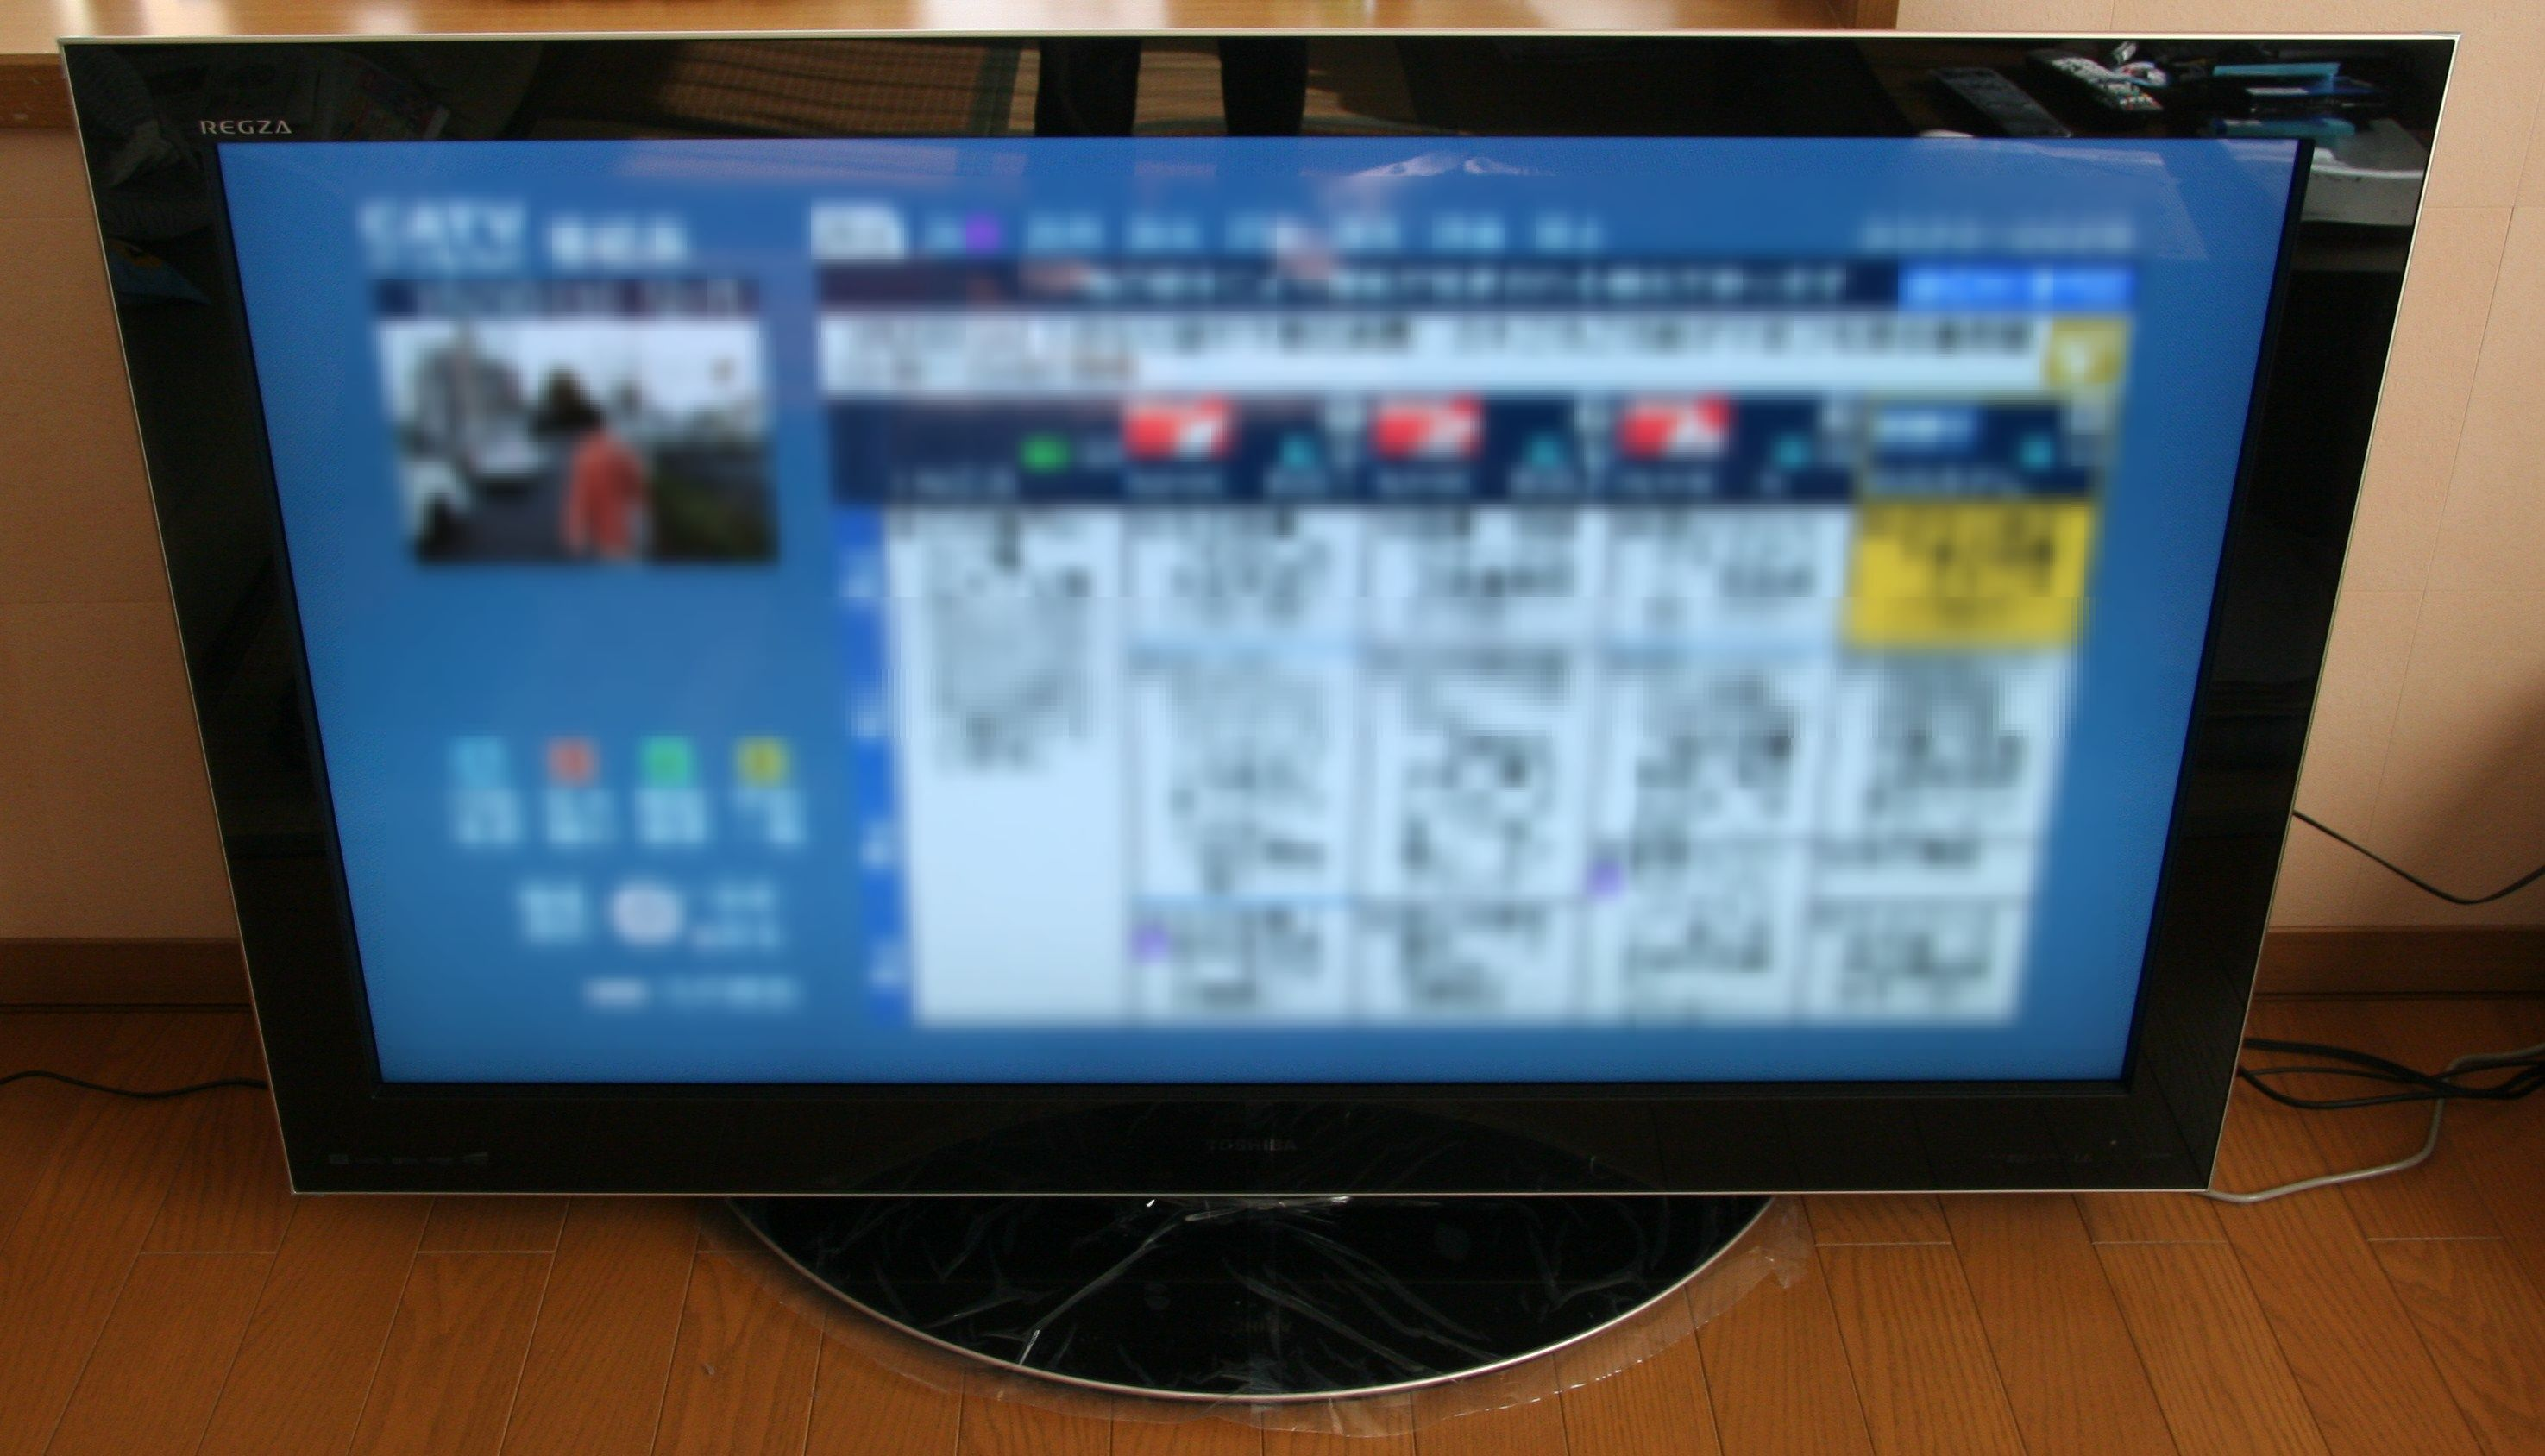 reviews by screen sony mitsubishi usage the best tv flat design large mid for range watching sports tvs